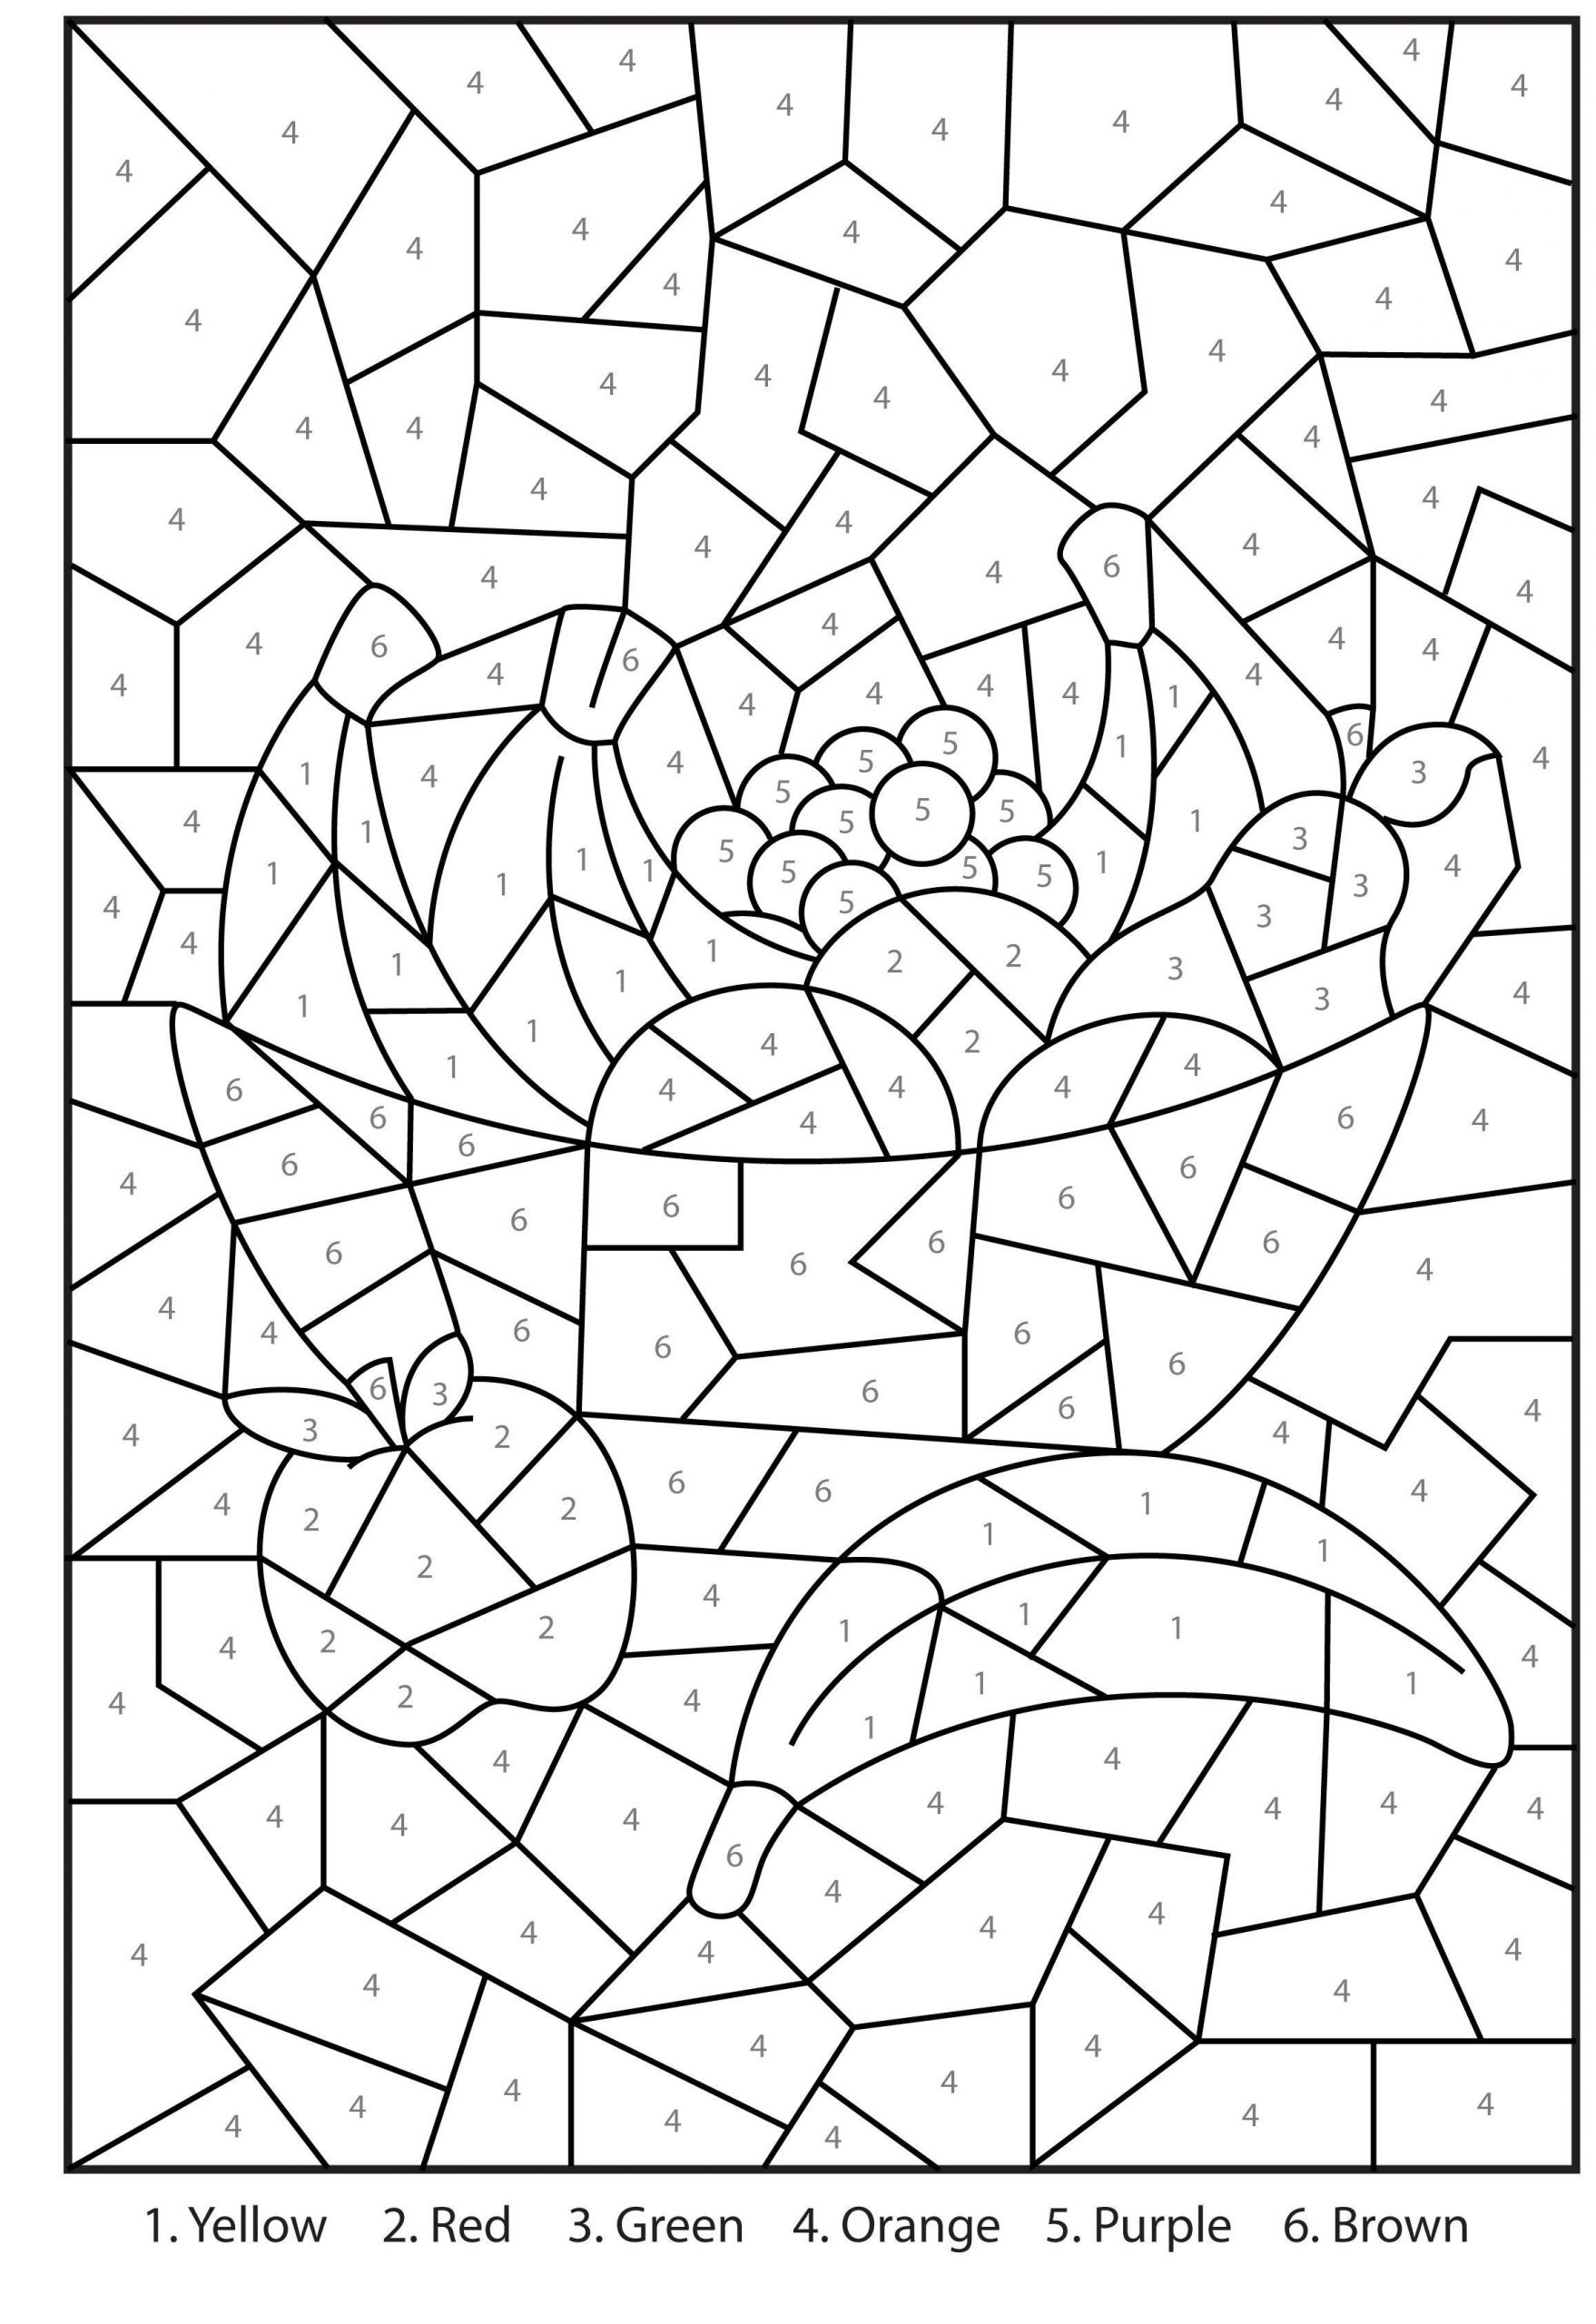 10 free printable color by number division worksheets